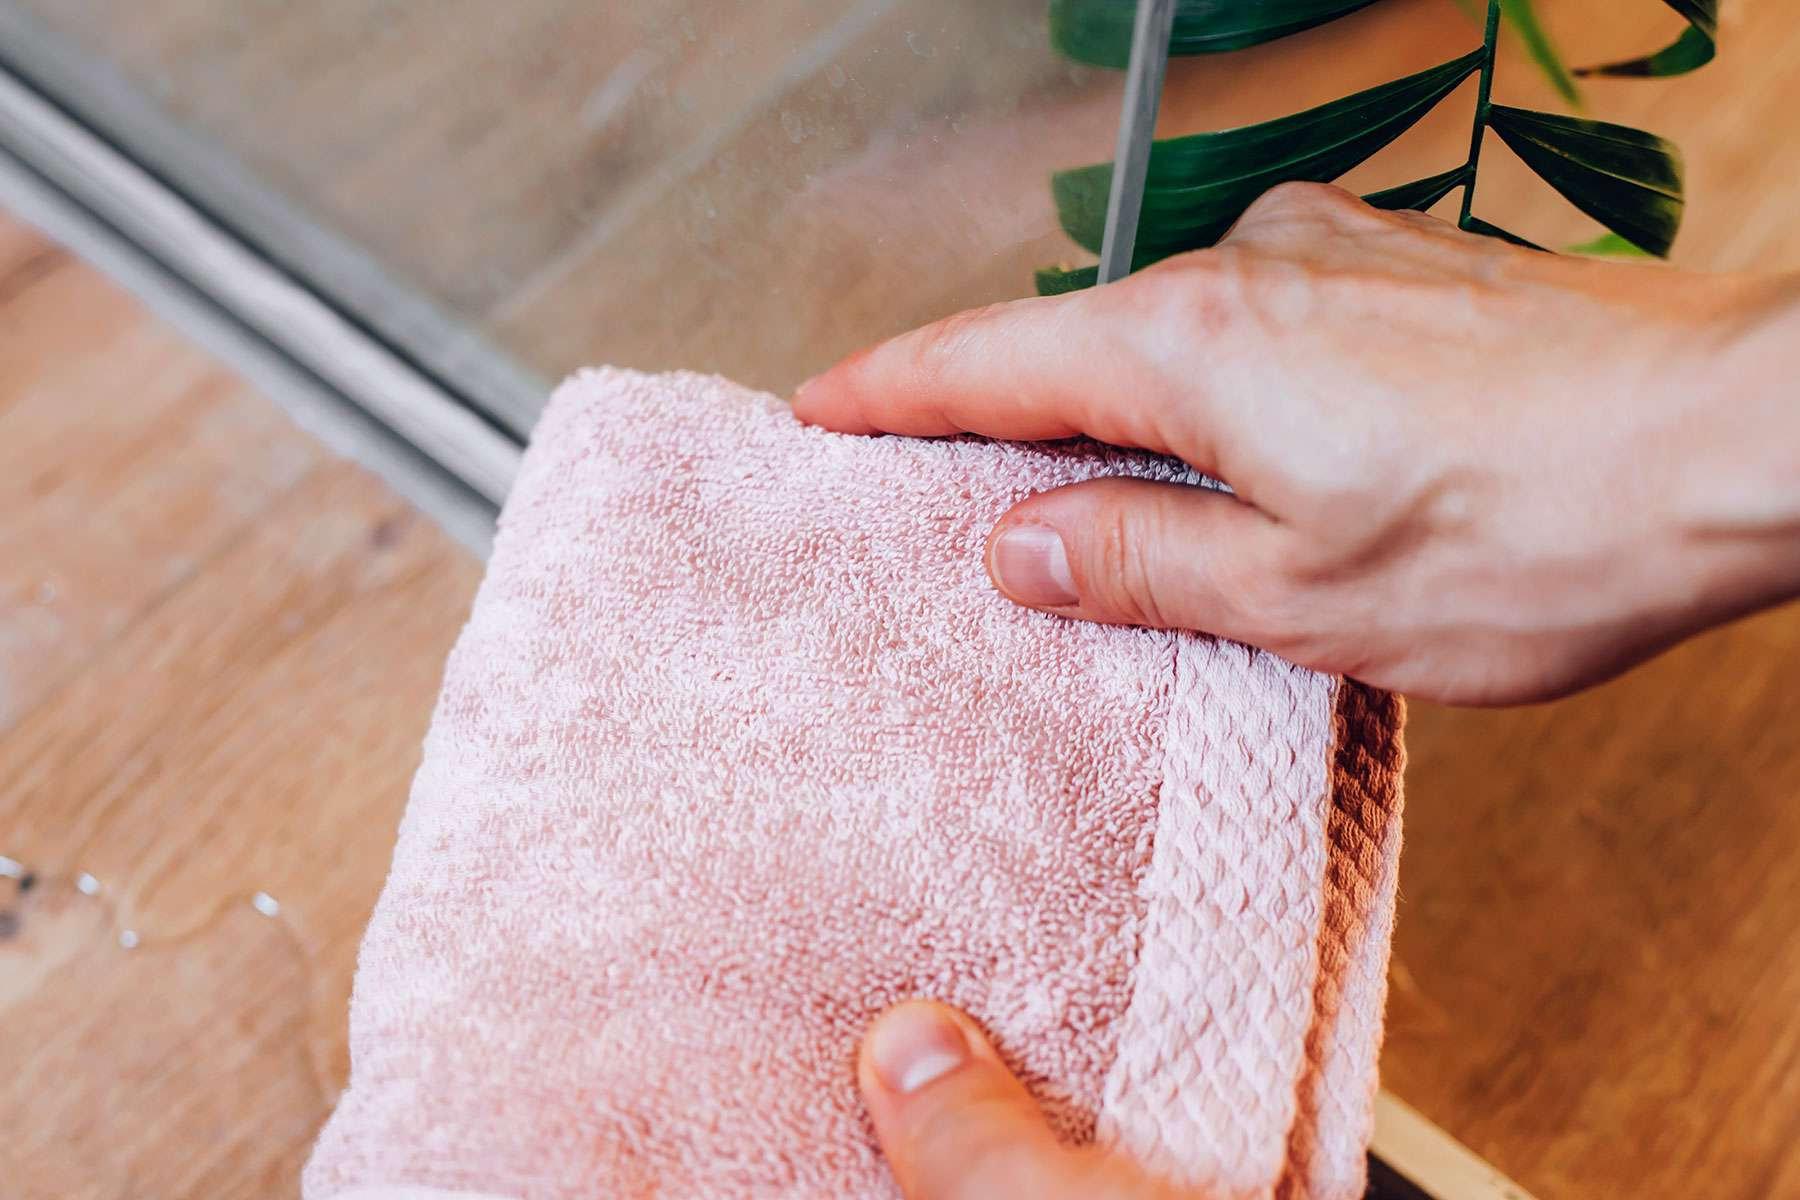 Glass shower door tracks dried with old pink towel